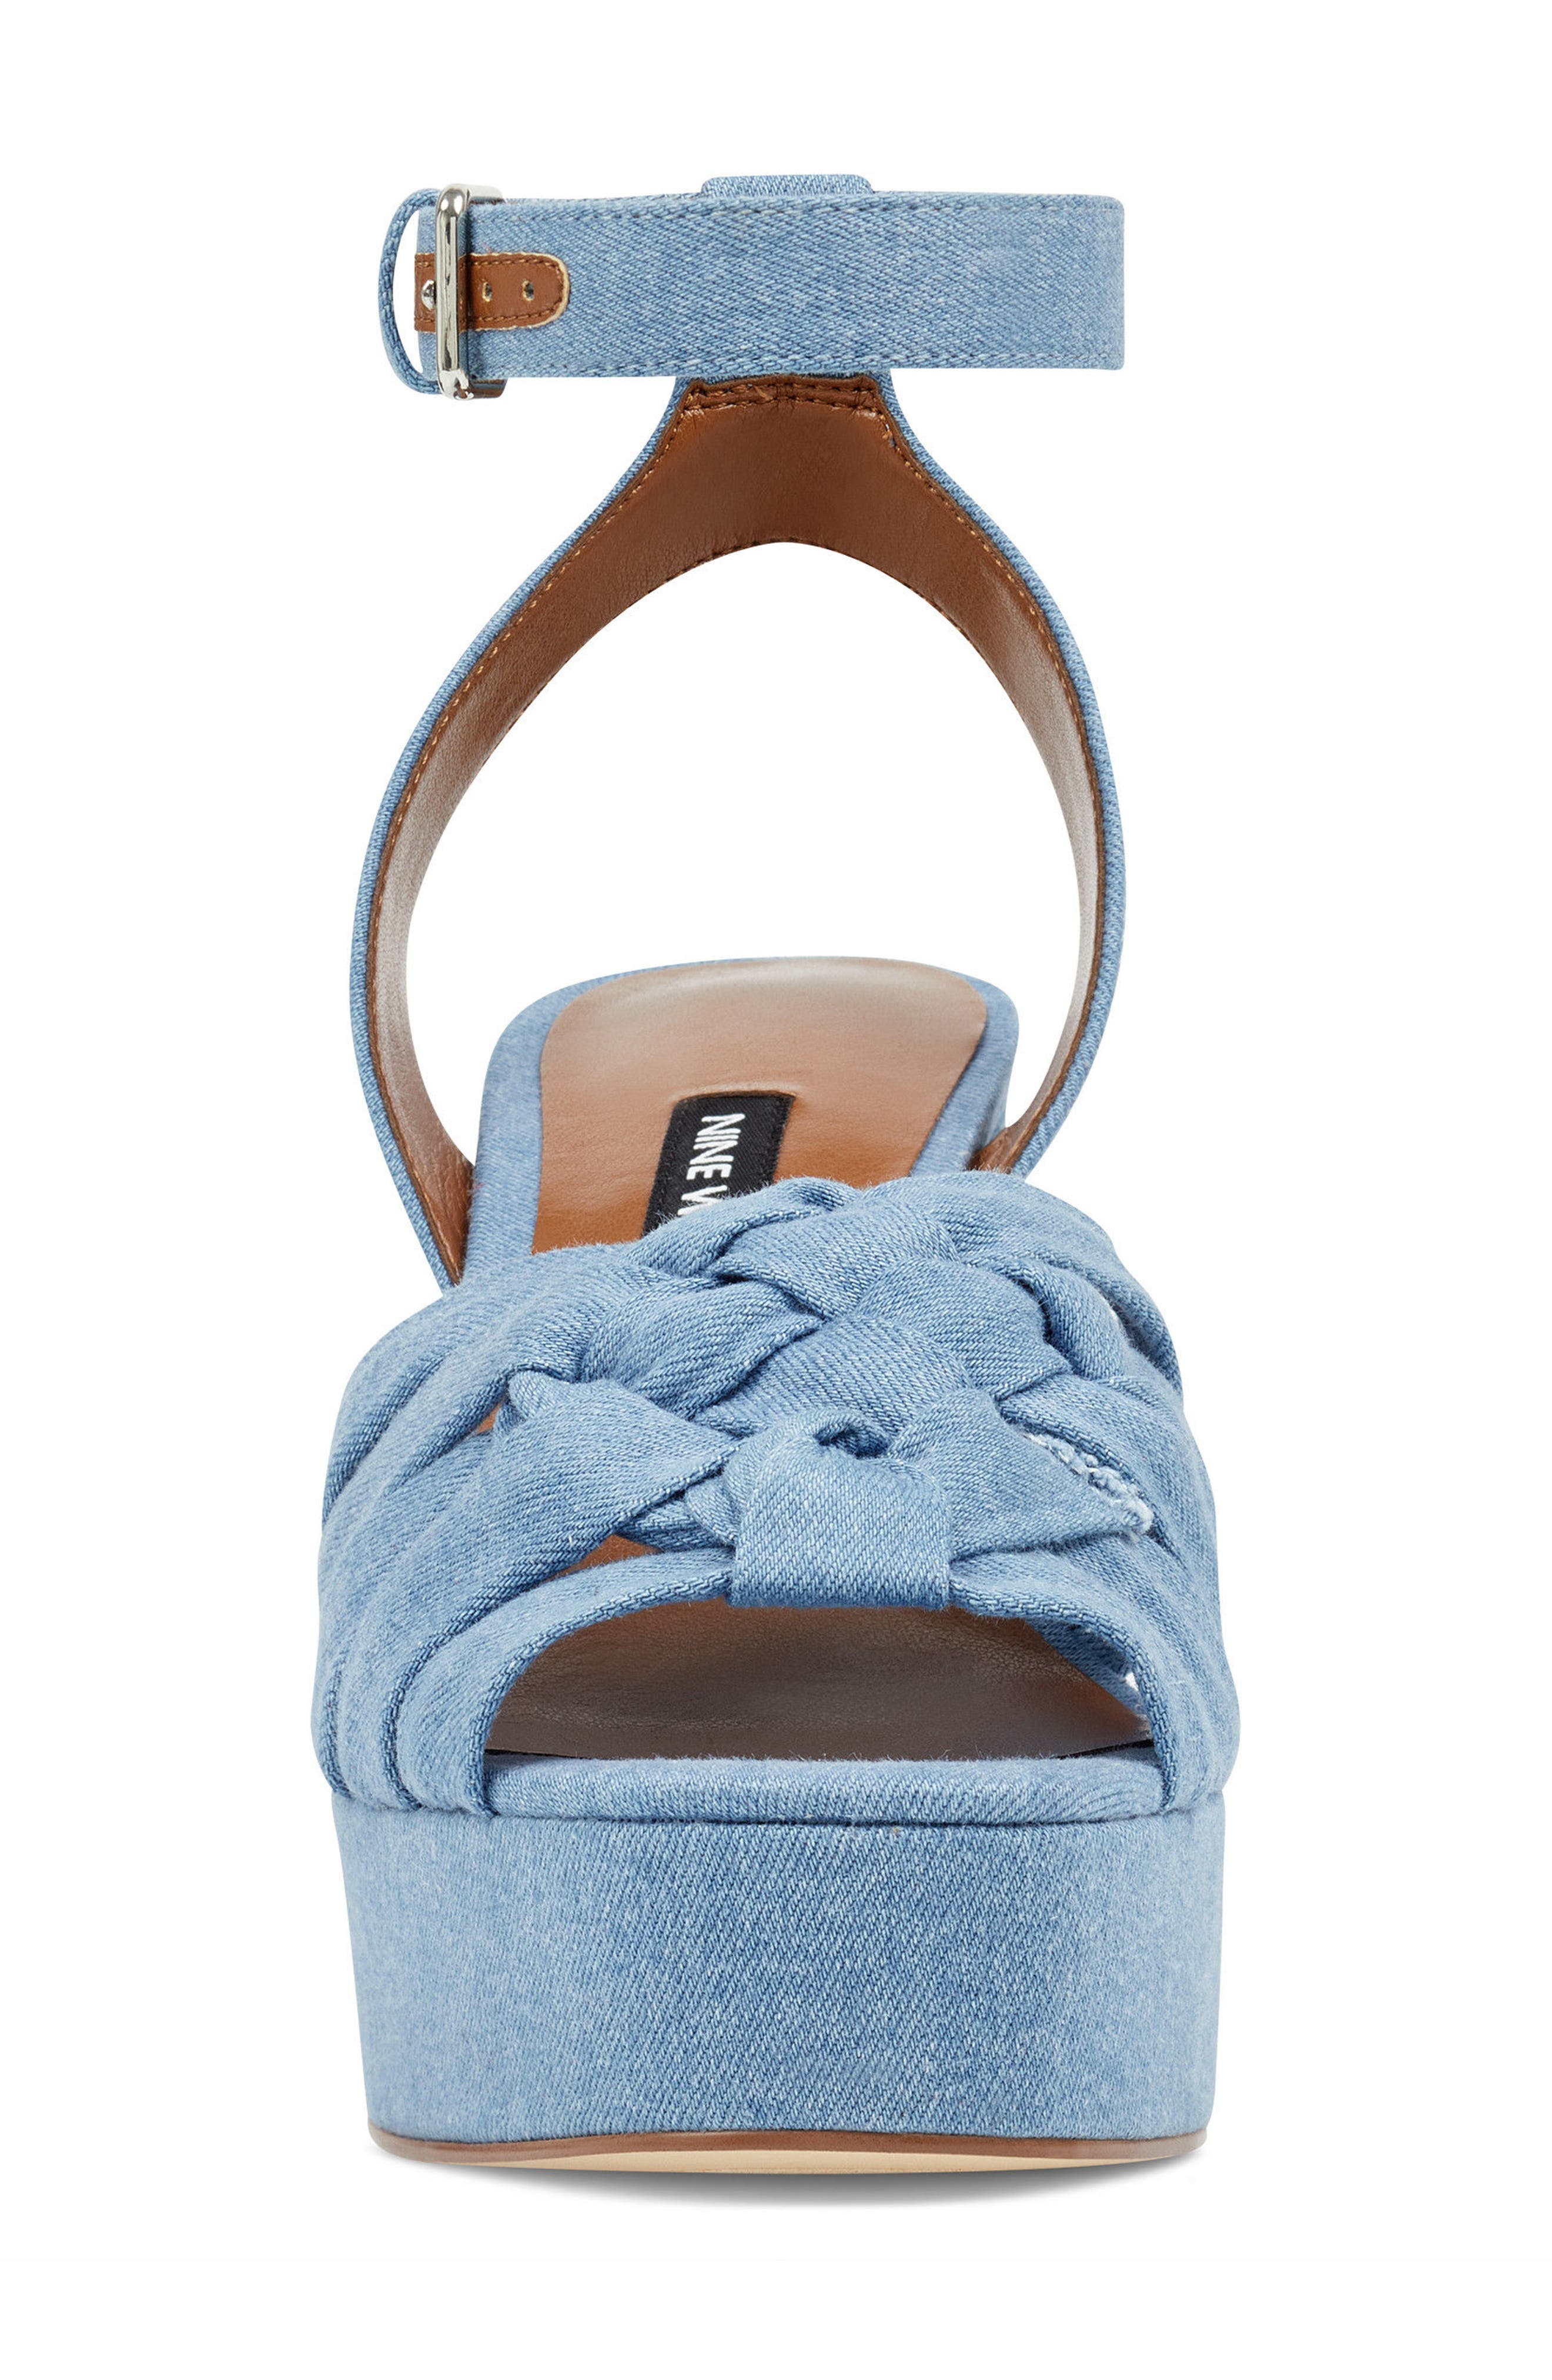 Fetuchini Platform Sandal,                             Alternate thumbnail 4, color,                             Light Blue Denim